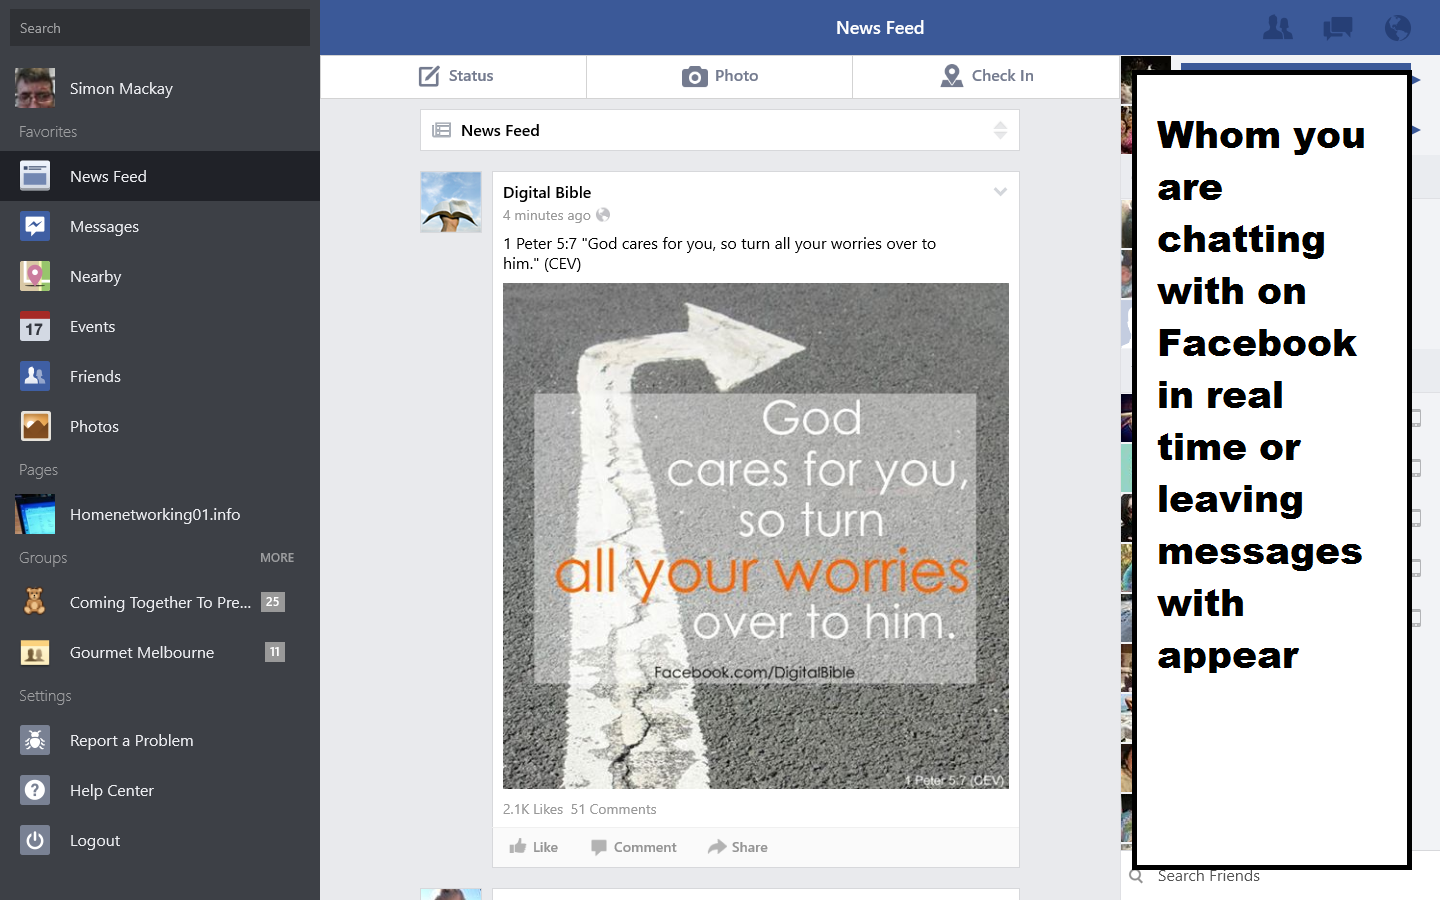 Official app for Facebook now on Windows 8.1